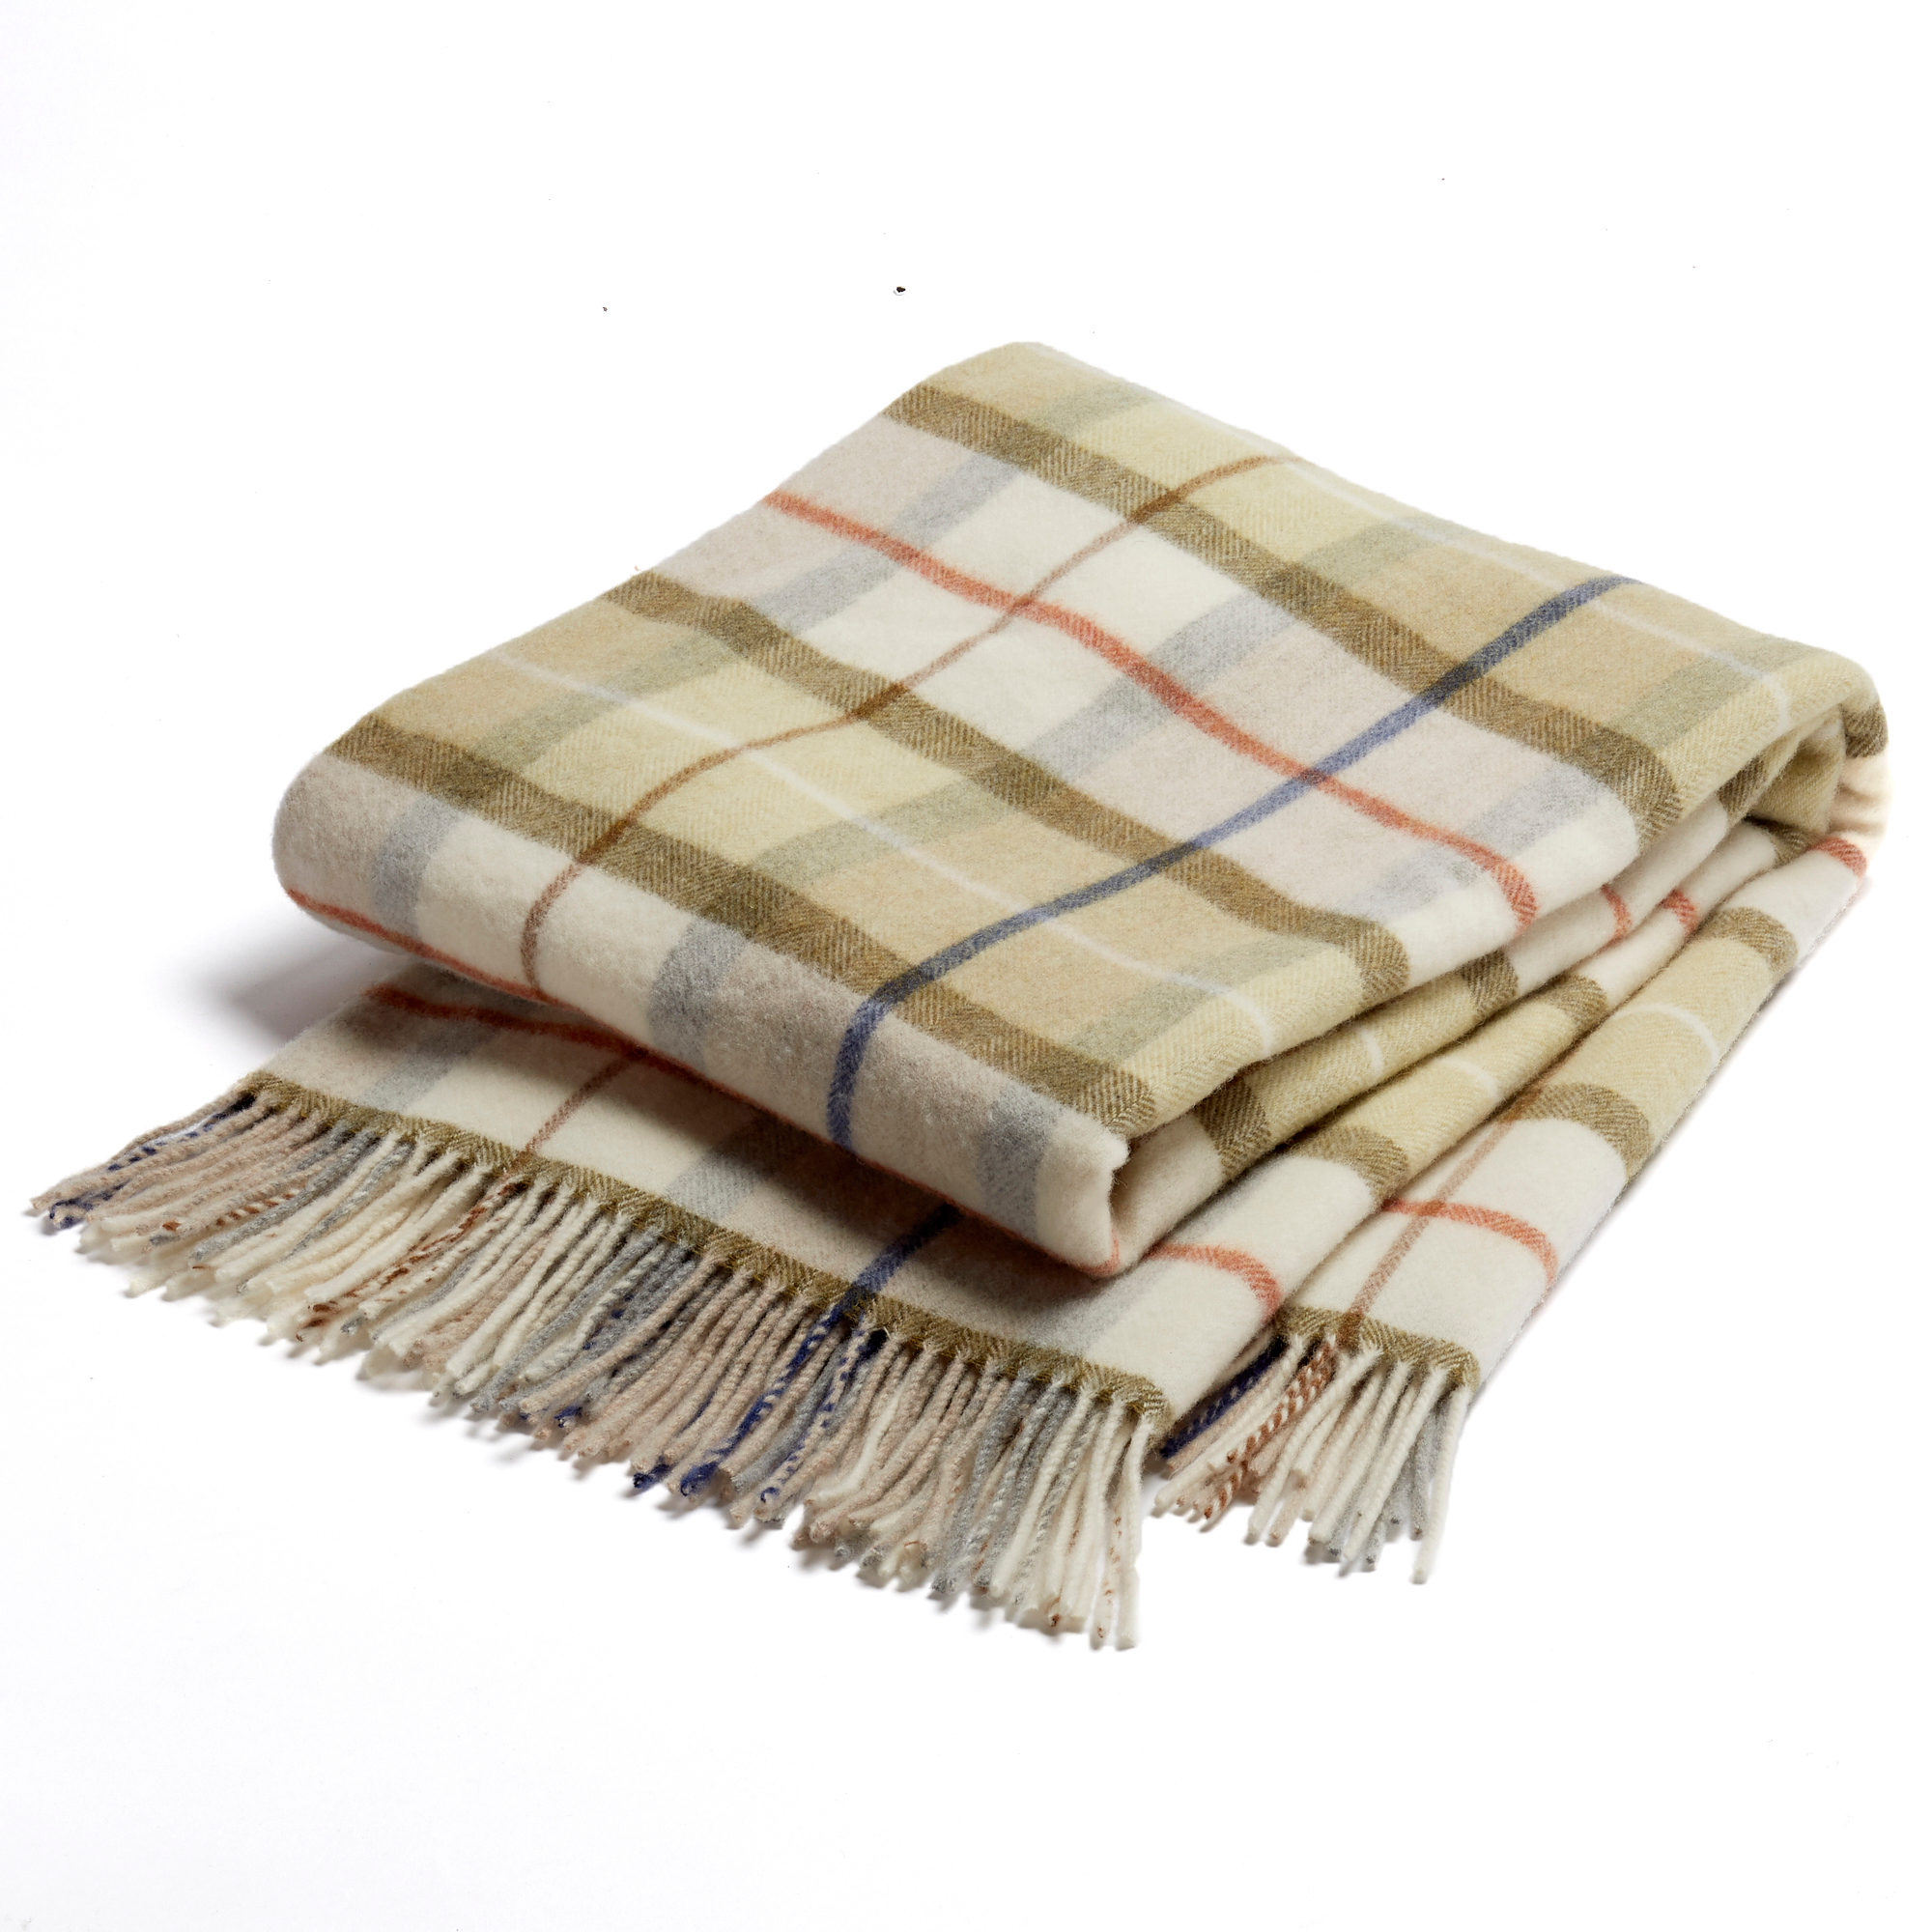 Tuscany Italian Lambswool Plaid Throws